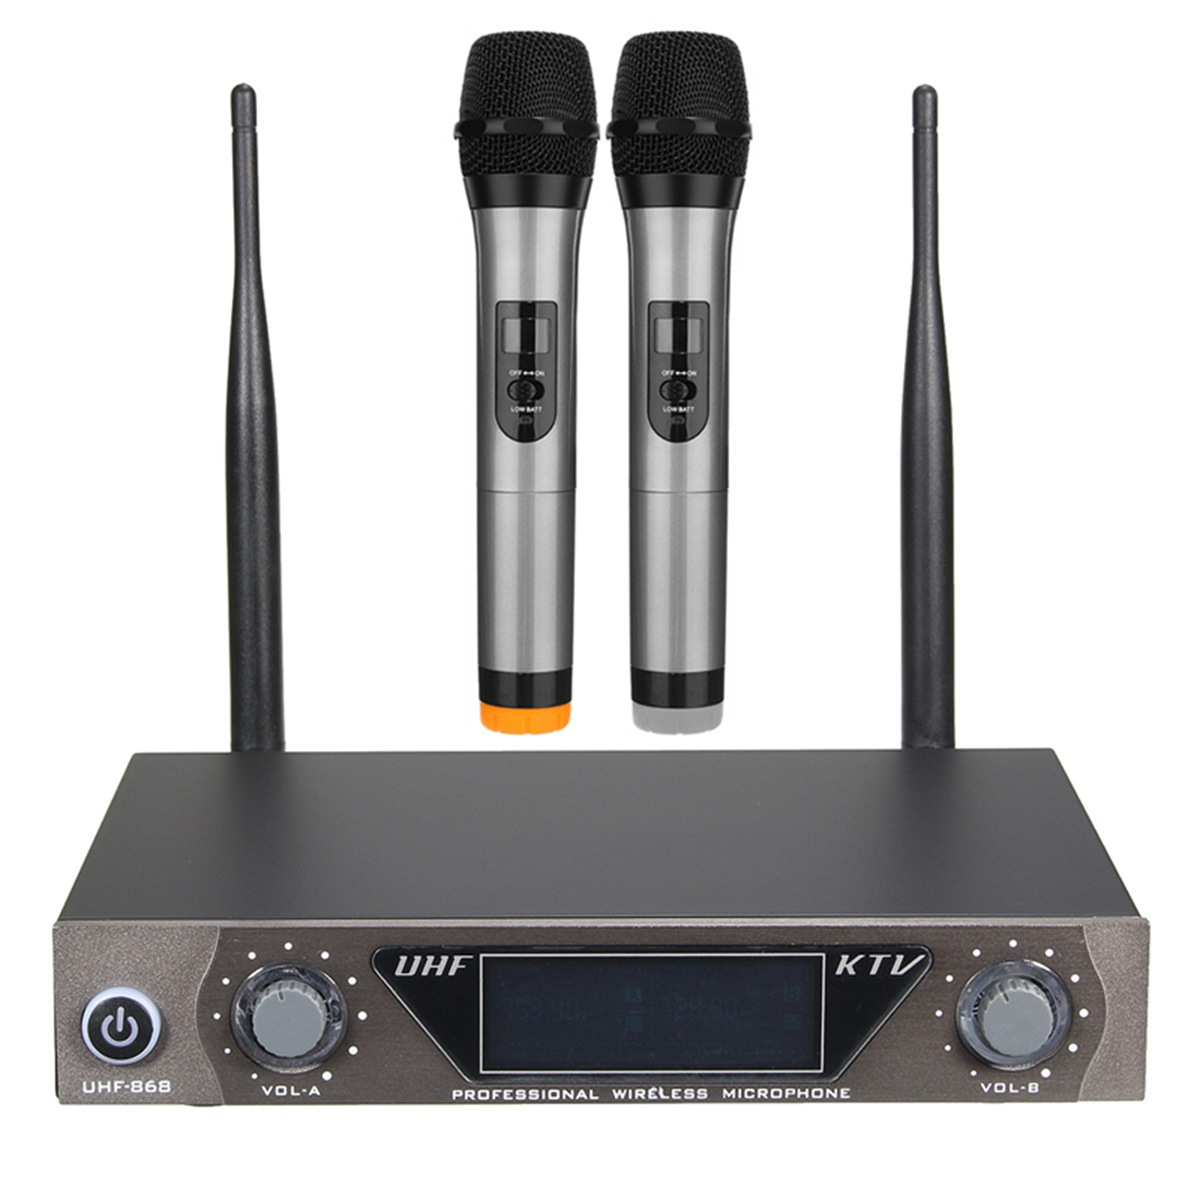 LEORY UHF Karaoke Wireless Microphone System With 2 Handheld Mic Dual Channel UHF Transmitter Microphone Systerm For Karaoke leory uhf wireless microphone system 4 channel uhf receiver karaoke microphone system with four mic for diy family ktv singing